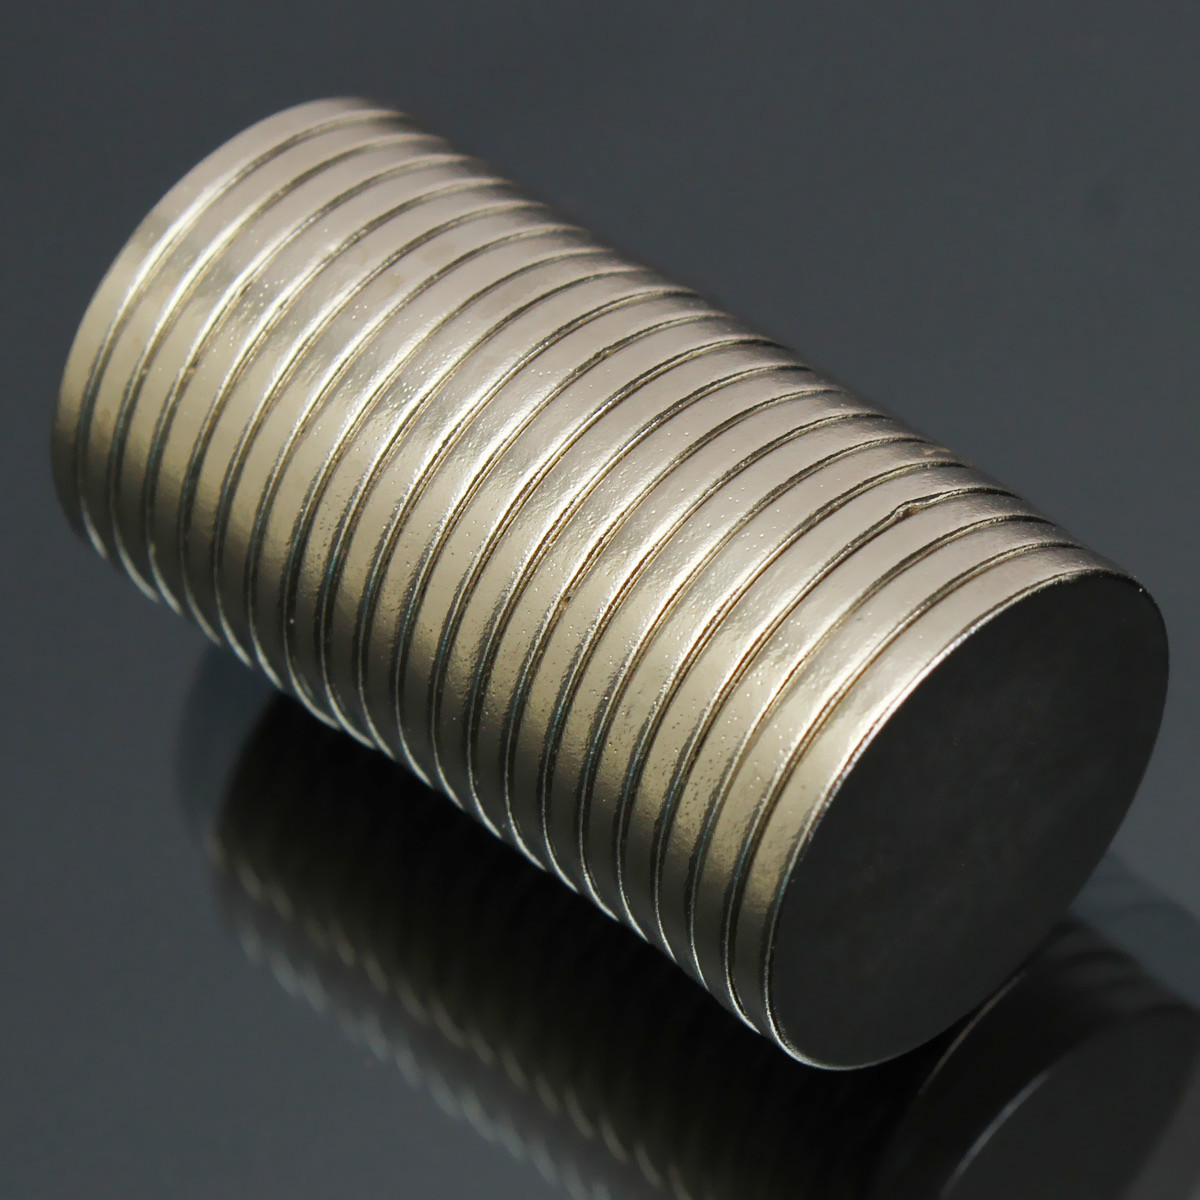 Buy 2N52 20mm x 2mm Strong Disc Magnets Rare Earth Neodymium